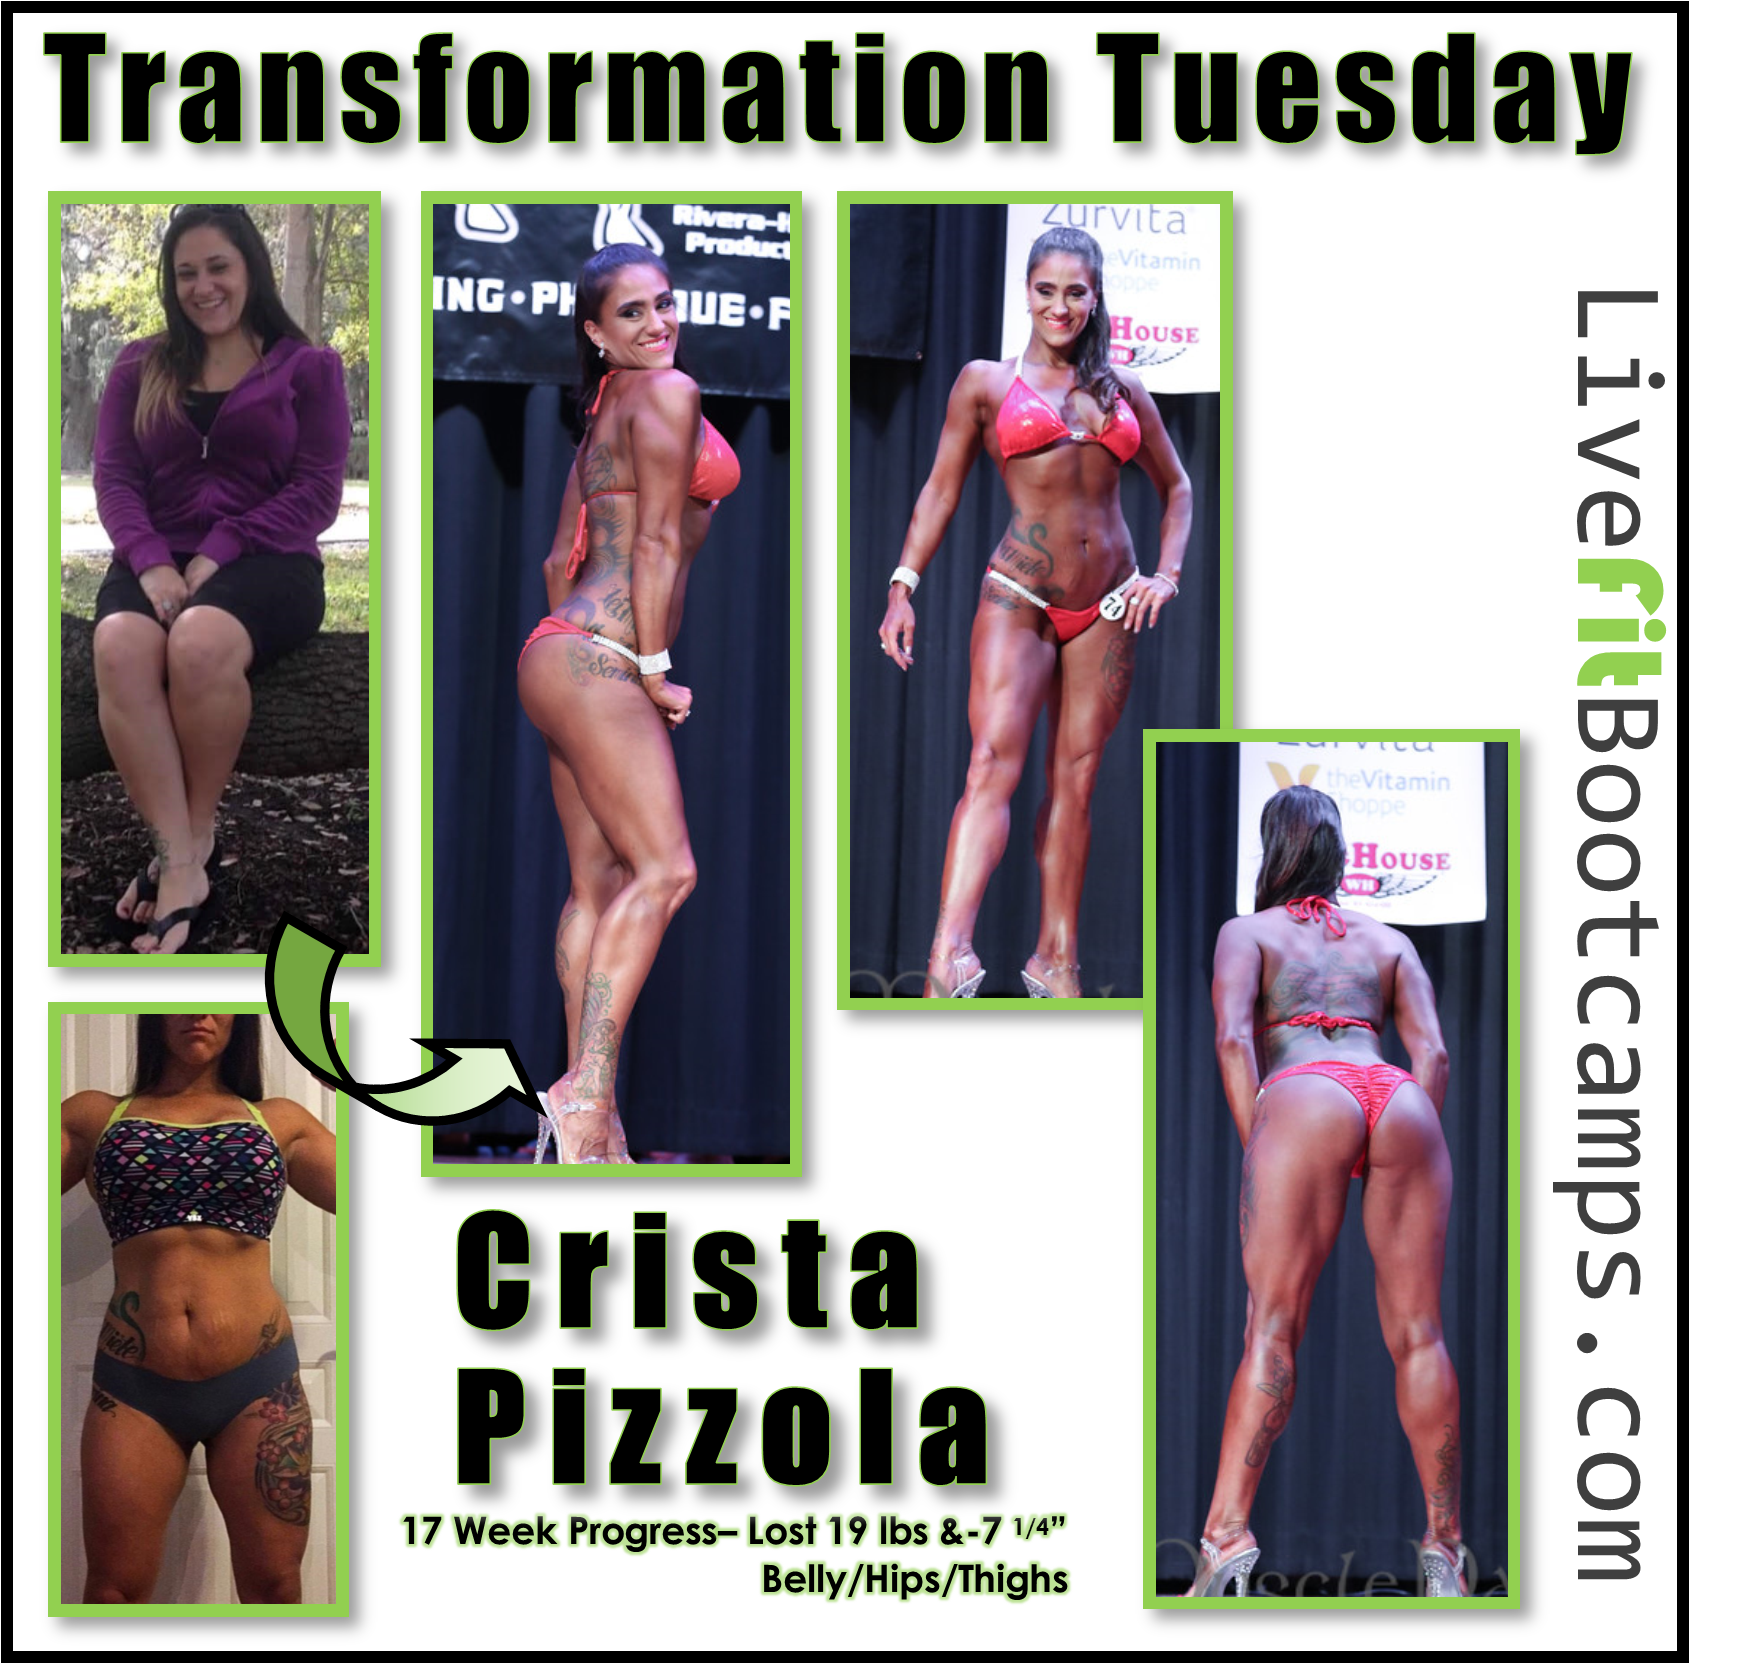 The Power of Your Team (Crista's Transformation)